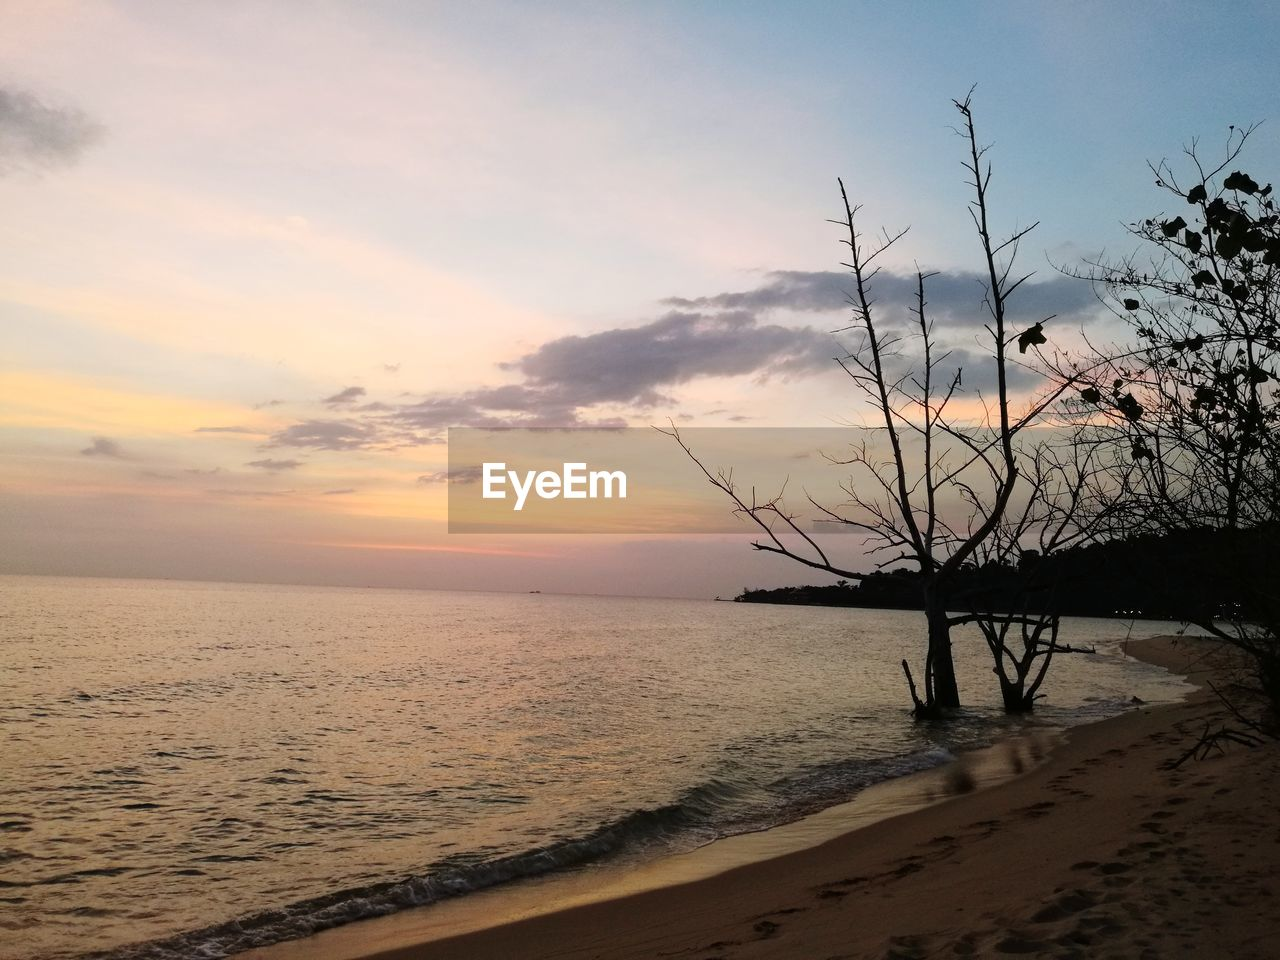 sky, sunset, water, beauty in nature, scenics - nature, tranquil scene, tranquility, cloud - sky, sea, land, beach, nature, horizon, horizon over water, no people, sand, idyllic, plant, tree, outdoors